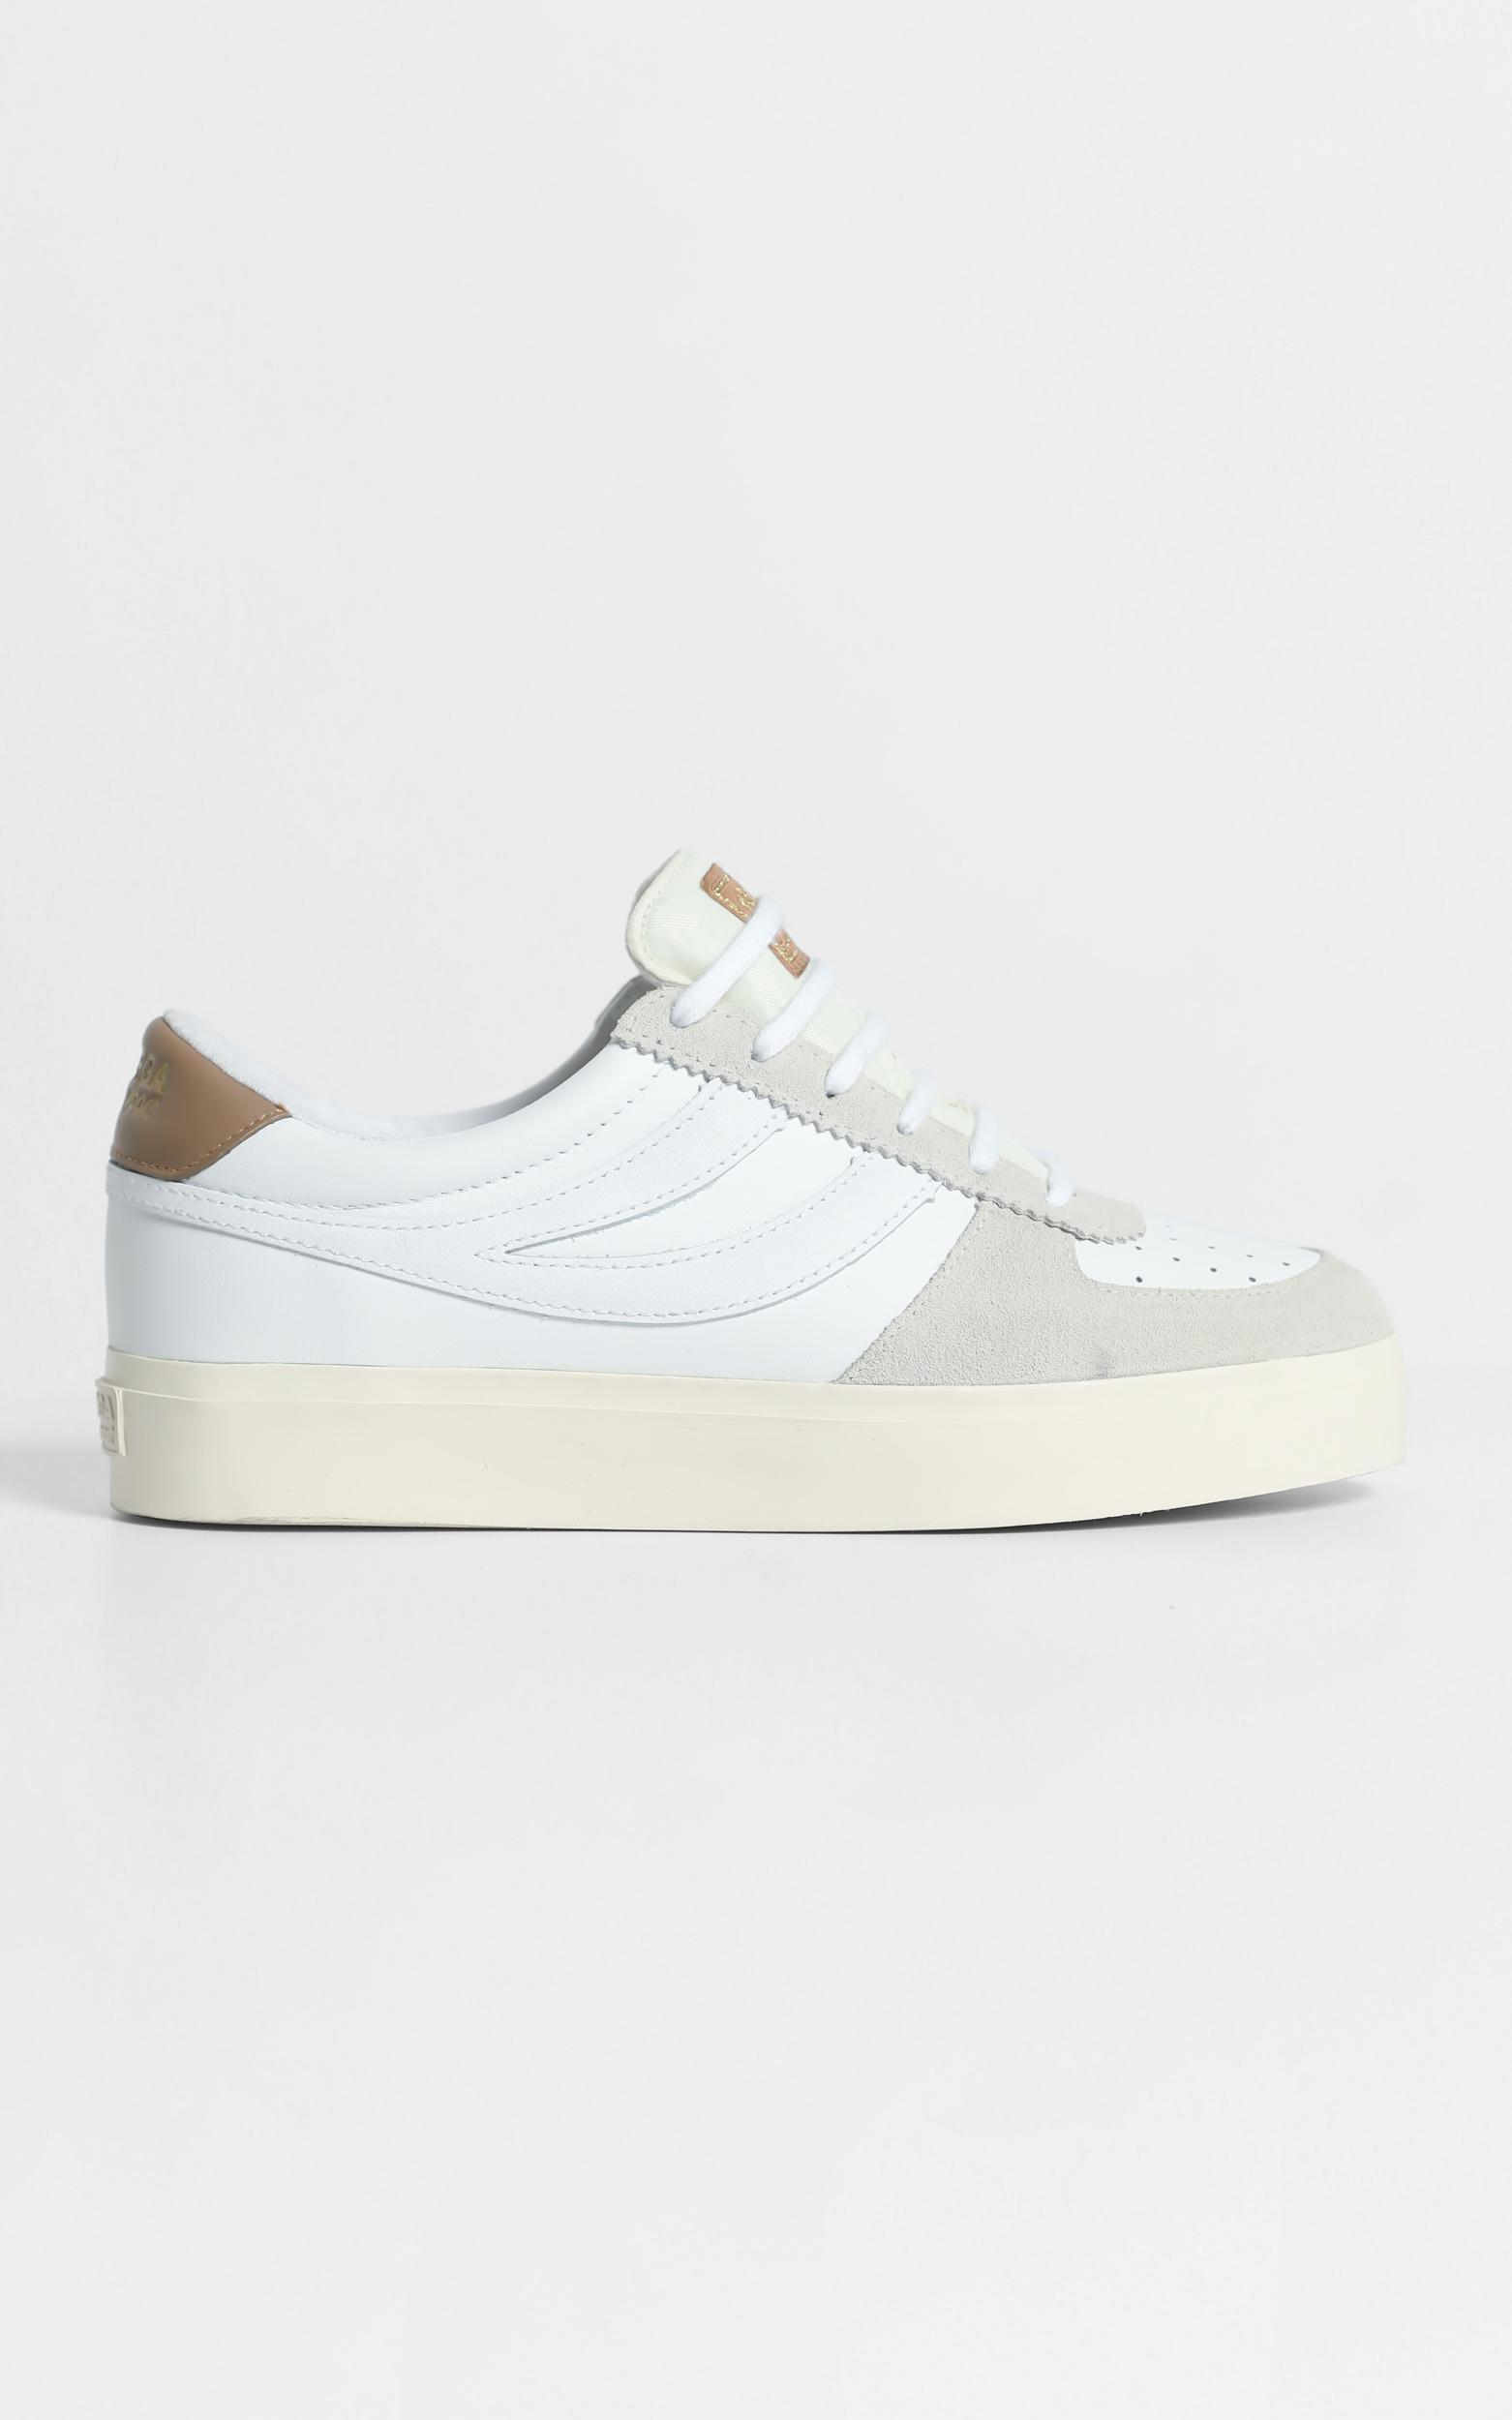 Superga - Seattle 3 Comflea Sneaker in white - brown dusty - 5, White, hi-res image number null